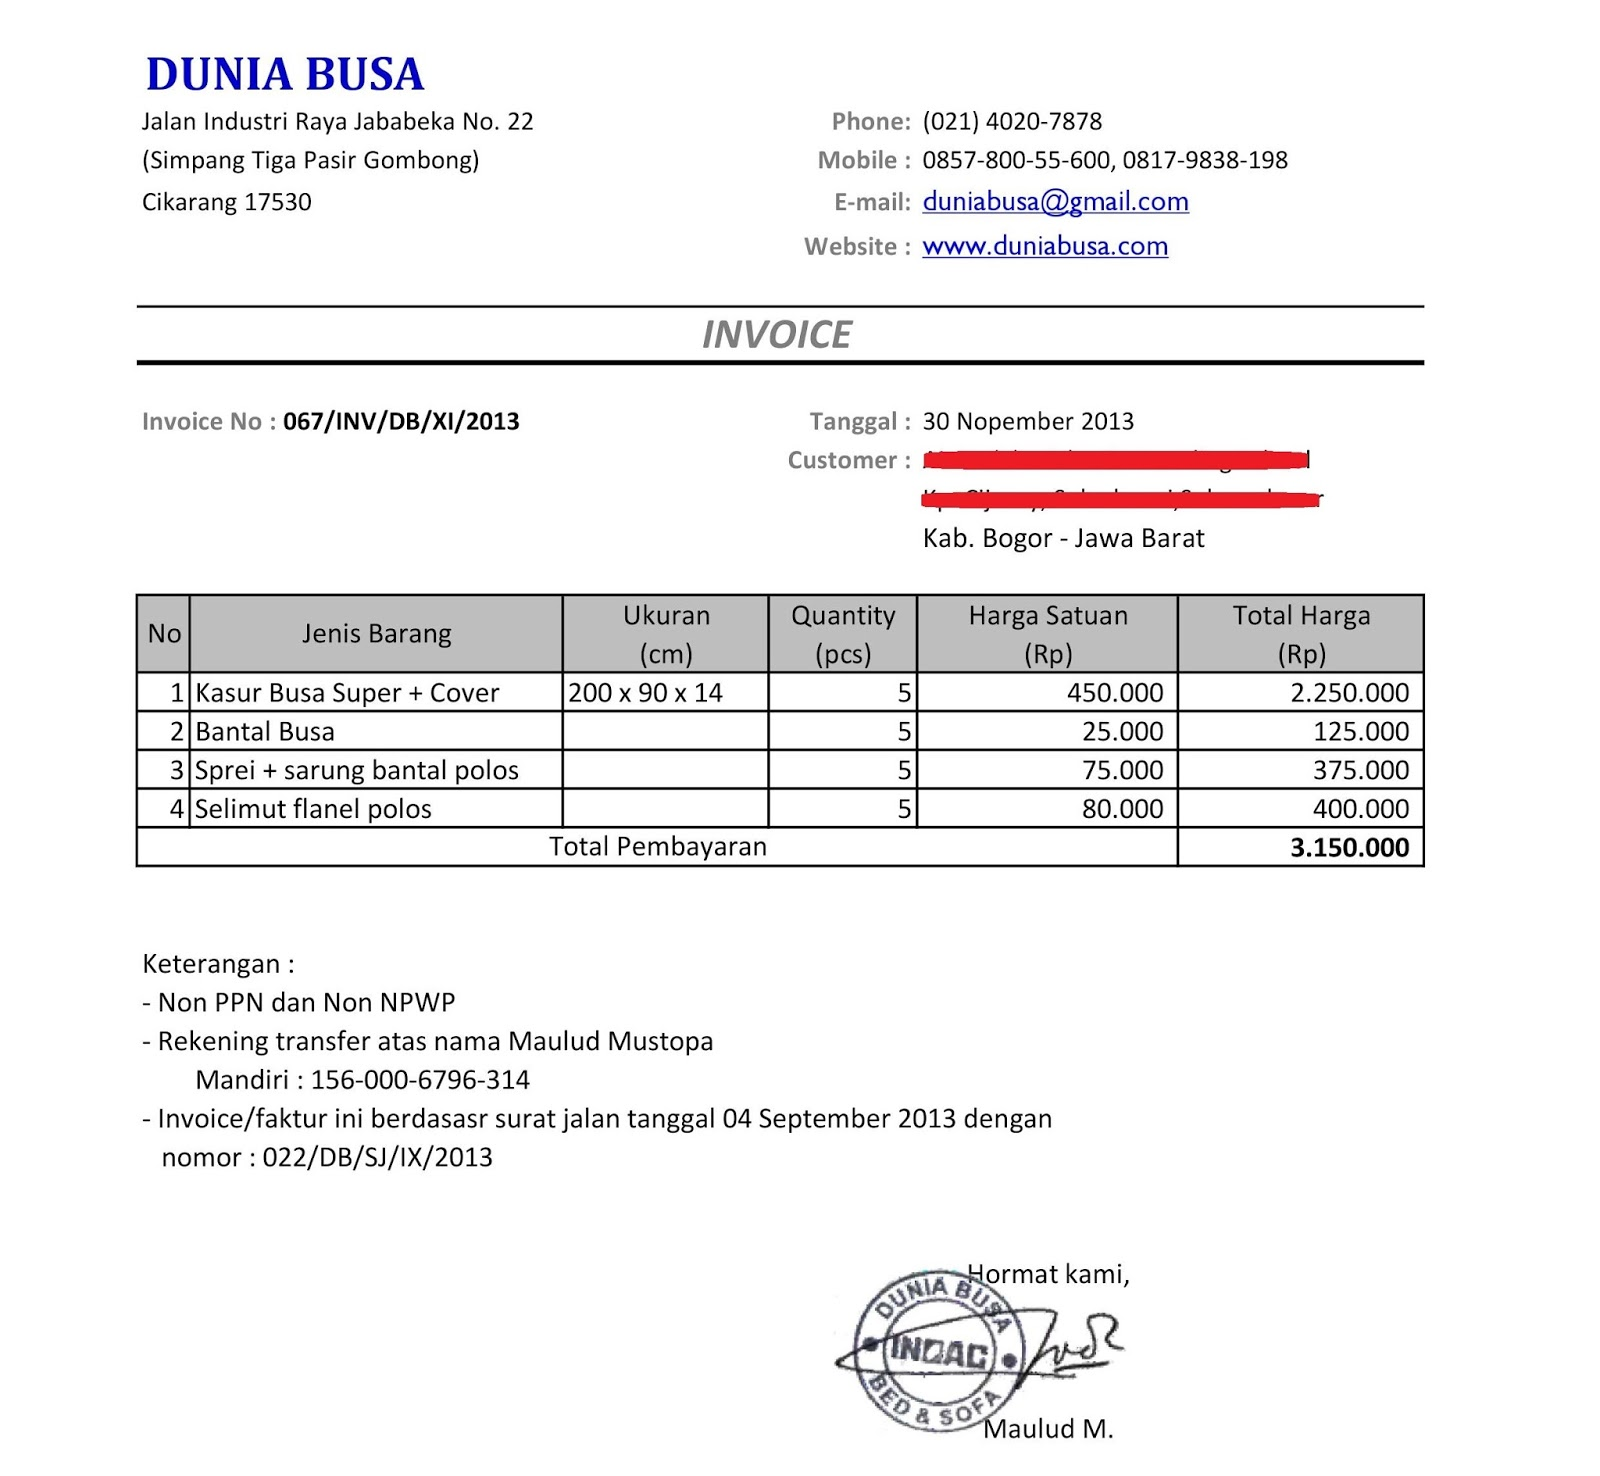 Centralasianshepherdus  Unique Free Invoice Online  Create Invoice Online  Invoice Template  With Marvelous Contoh Format Invoice Atau Surat Tagihan  Brankas Arsip  Free Invoice Online With Appealing What Is A Ebay Invoice Also Proforma Invoices In Addition Order Invoices And Custom Invoice Printing As Well As Johnson Controls Invoicing Additionally Sponsorship Invoice From Sklepco With Centralasianshepherdus  Marvelous Free Invoice Online  Create Invoice Online  Invoice Template  With Appealing Contoh Format Invoice Atau Surat Tagihan  Brankas Arsip  Free Invoice Online And Unique What Is A Ebay Invoice Also Proforma Invoices In Addition Order Invoices From Sklepco